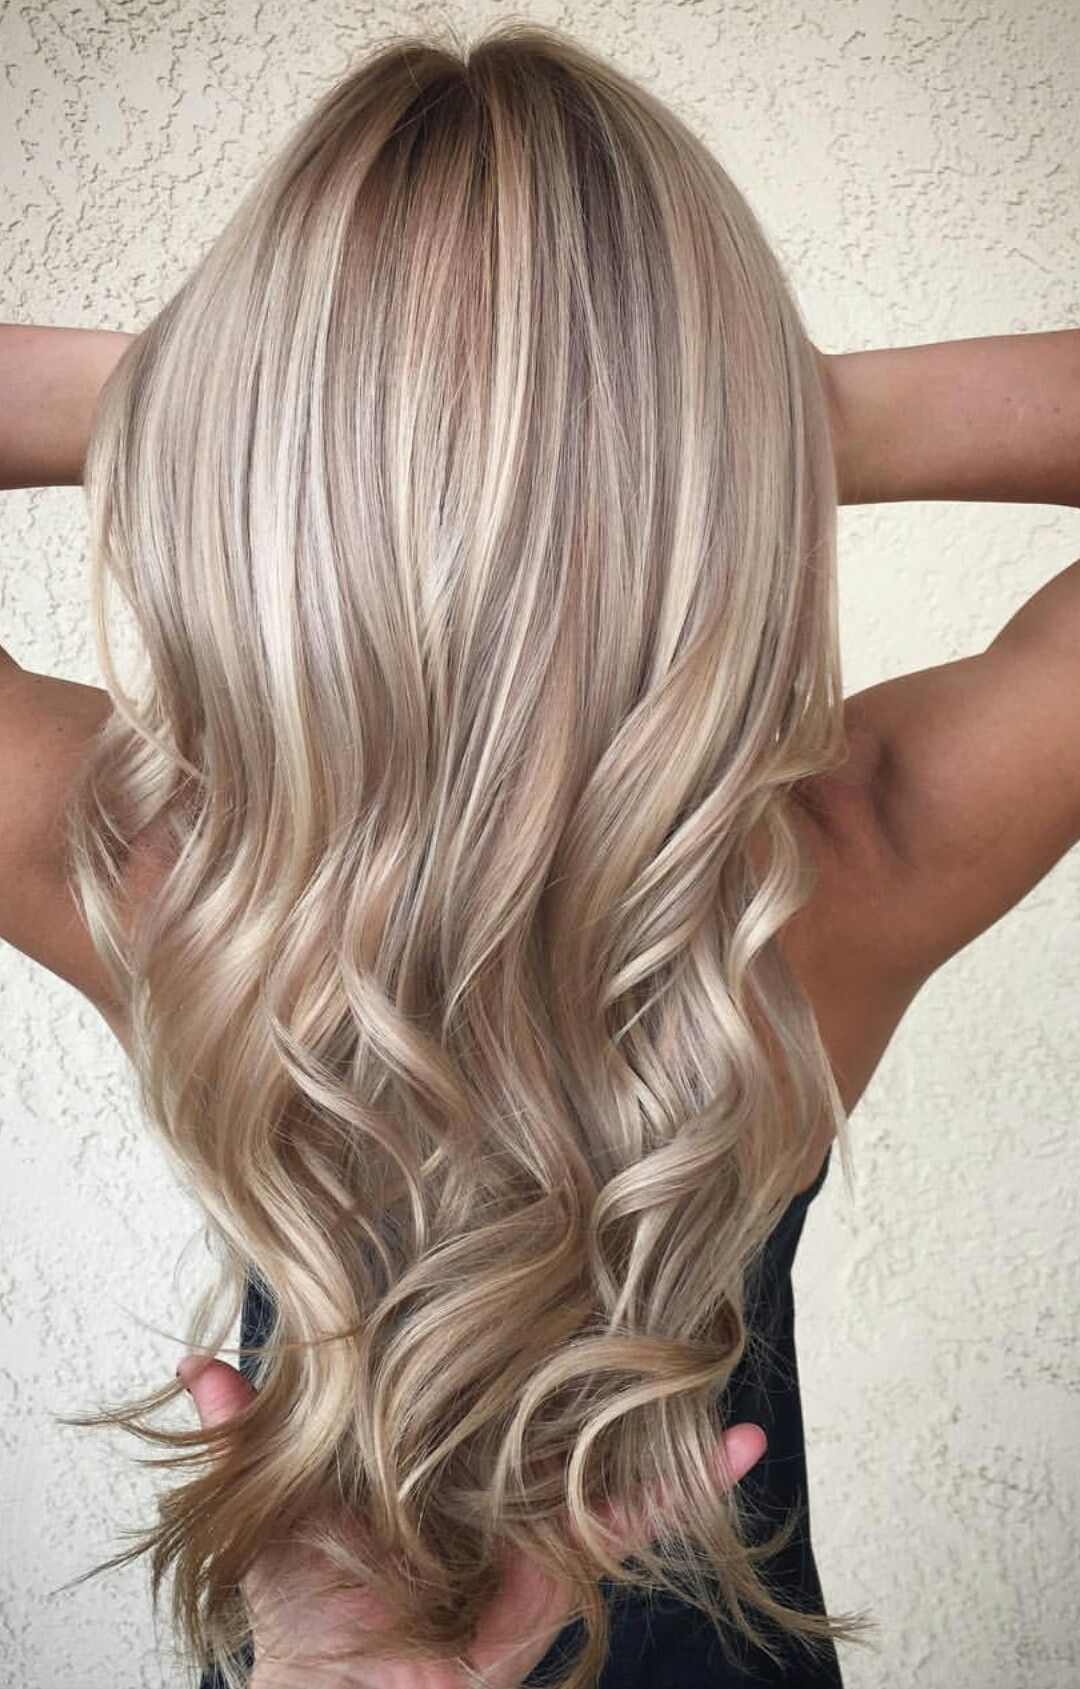 Pinkwednesdays Hair Styles Blonde Hair With Highlights Human Hair Color